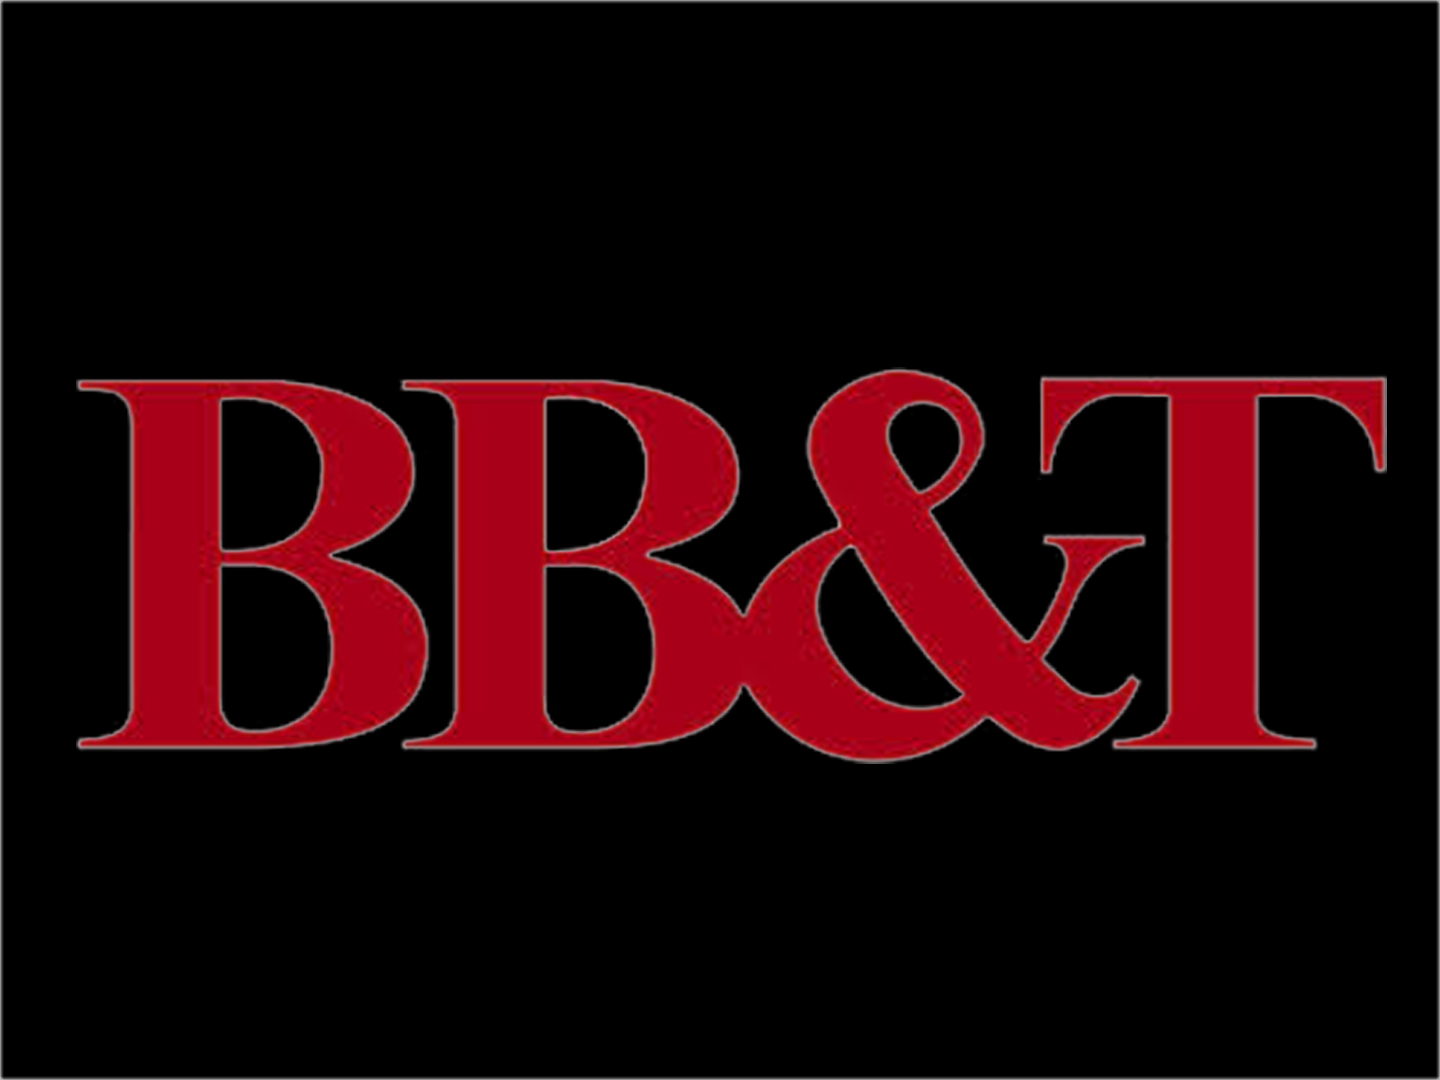 BB&T logo blackground_edited-1.jpg